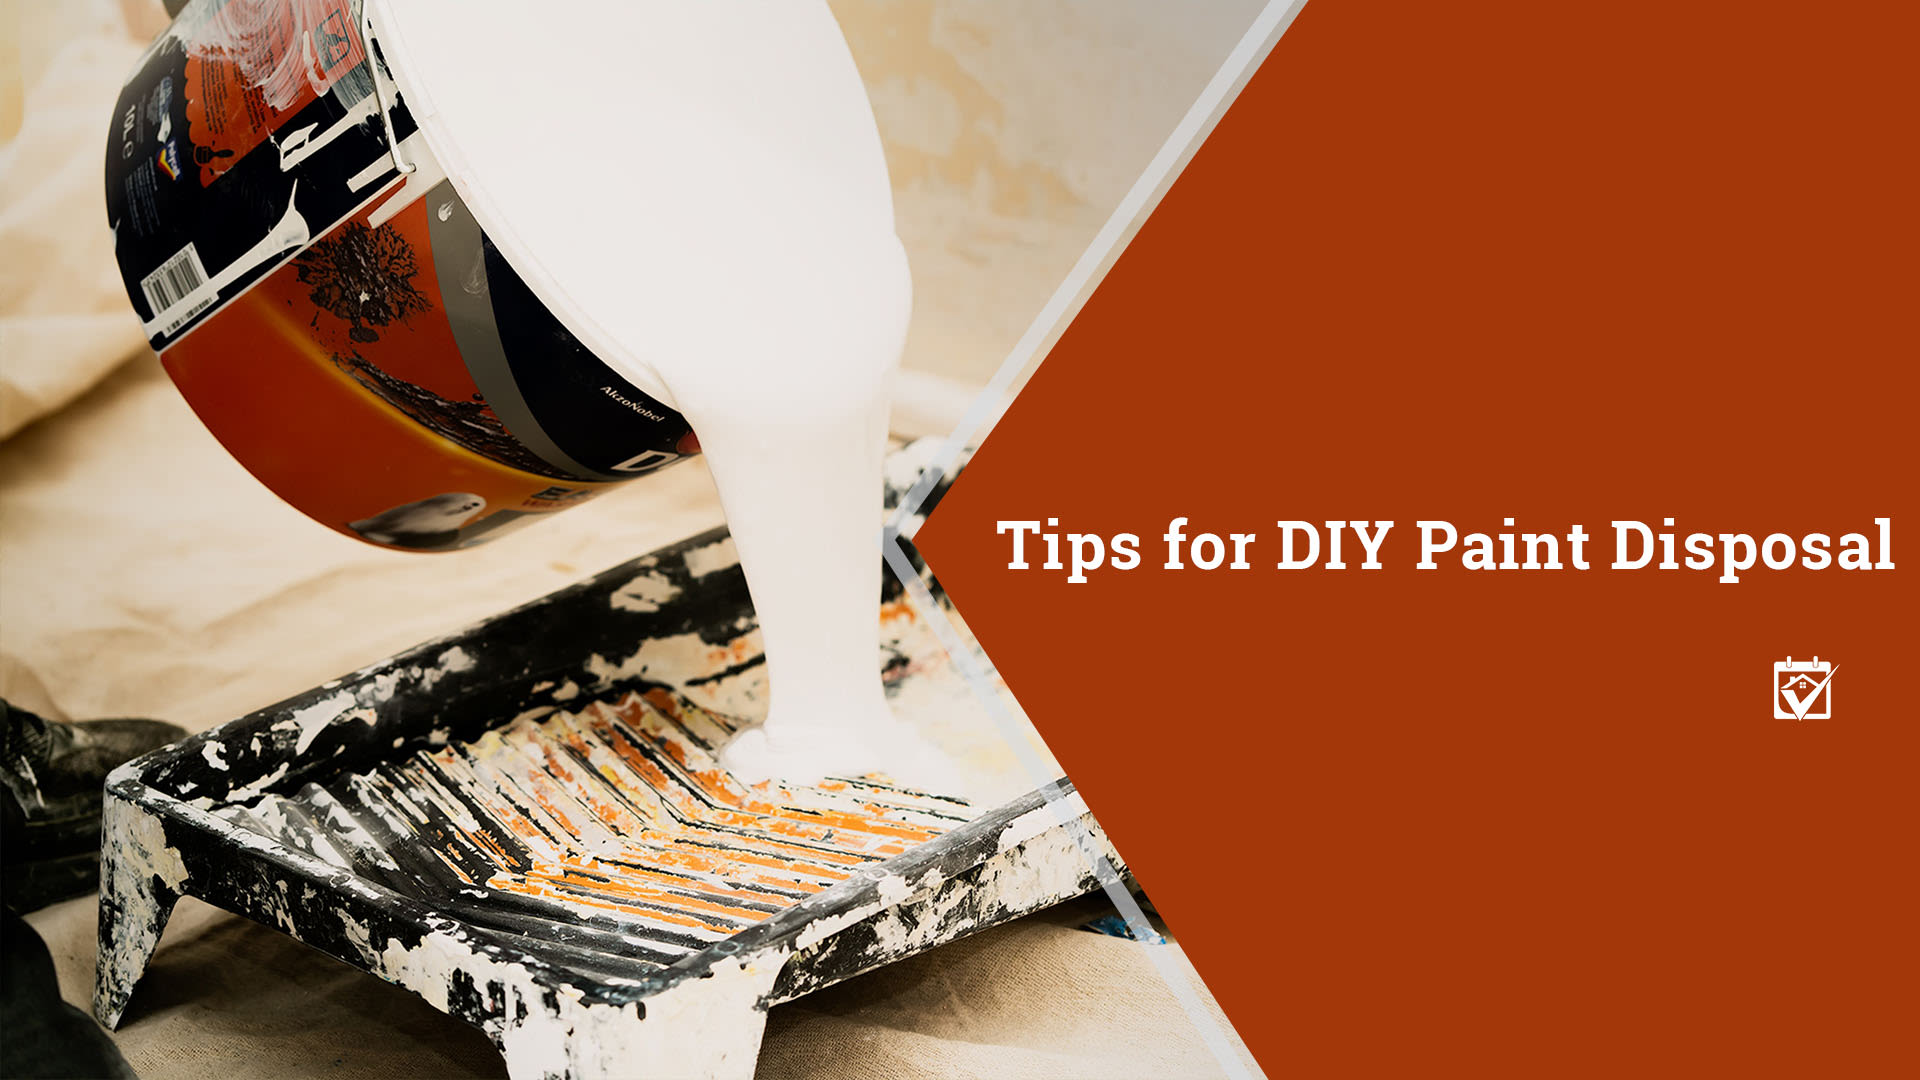 5 Tips for DIY Paint Disposal